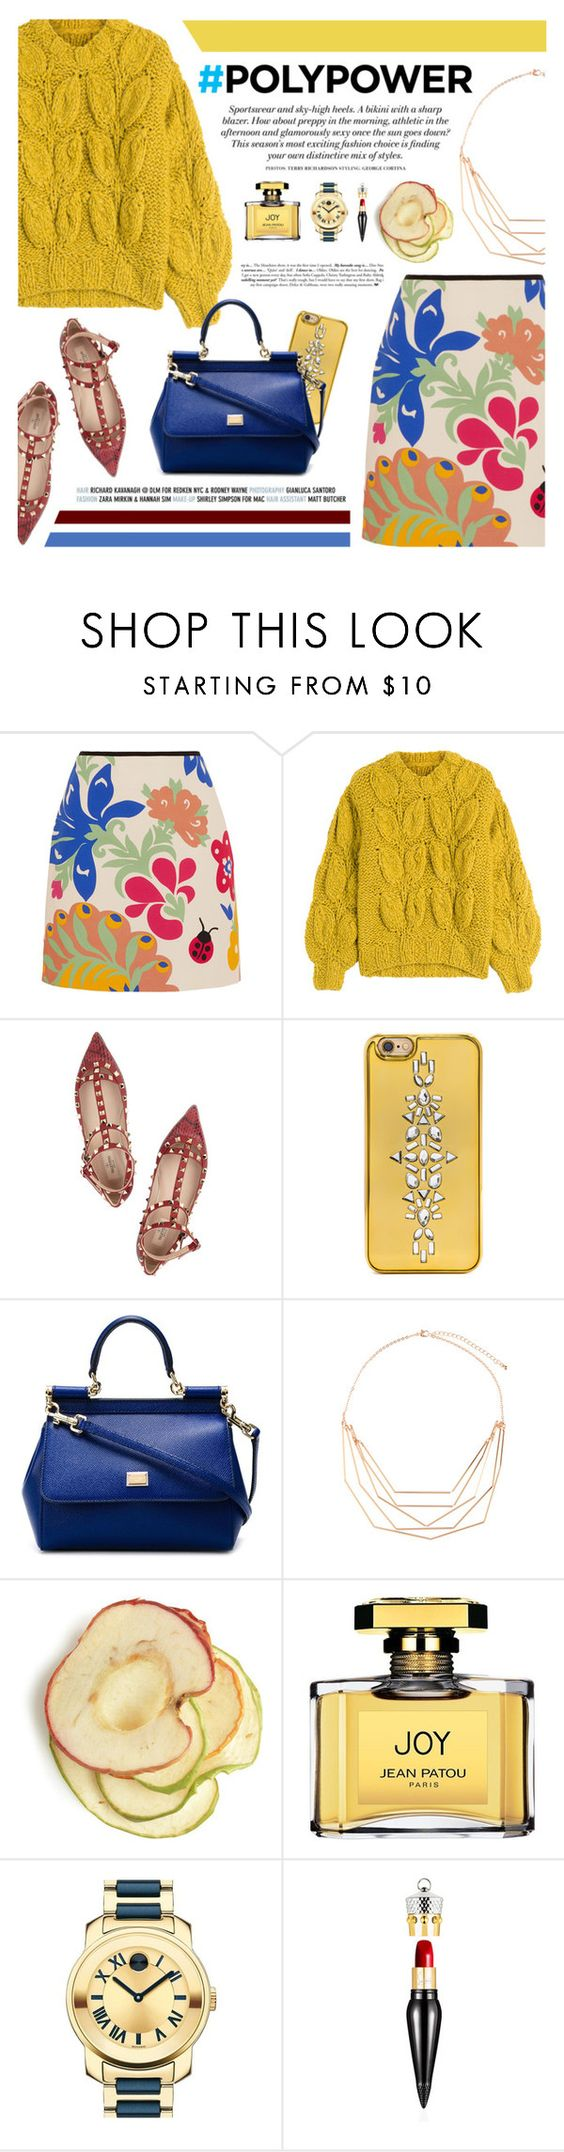 """#POLYPOWER"" by defivirda ❤ liked on Polyvore featuring Victoria, Victoria Beckham, Maison Margiela, Valentino, BaubleBar, Dolce&Gabbana, Accessorize, H&M, Jean Patou, Movado and Christian Louboutin"